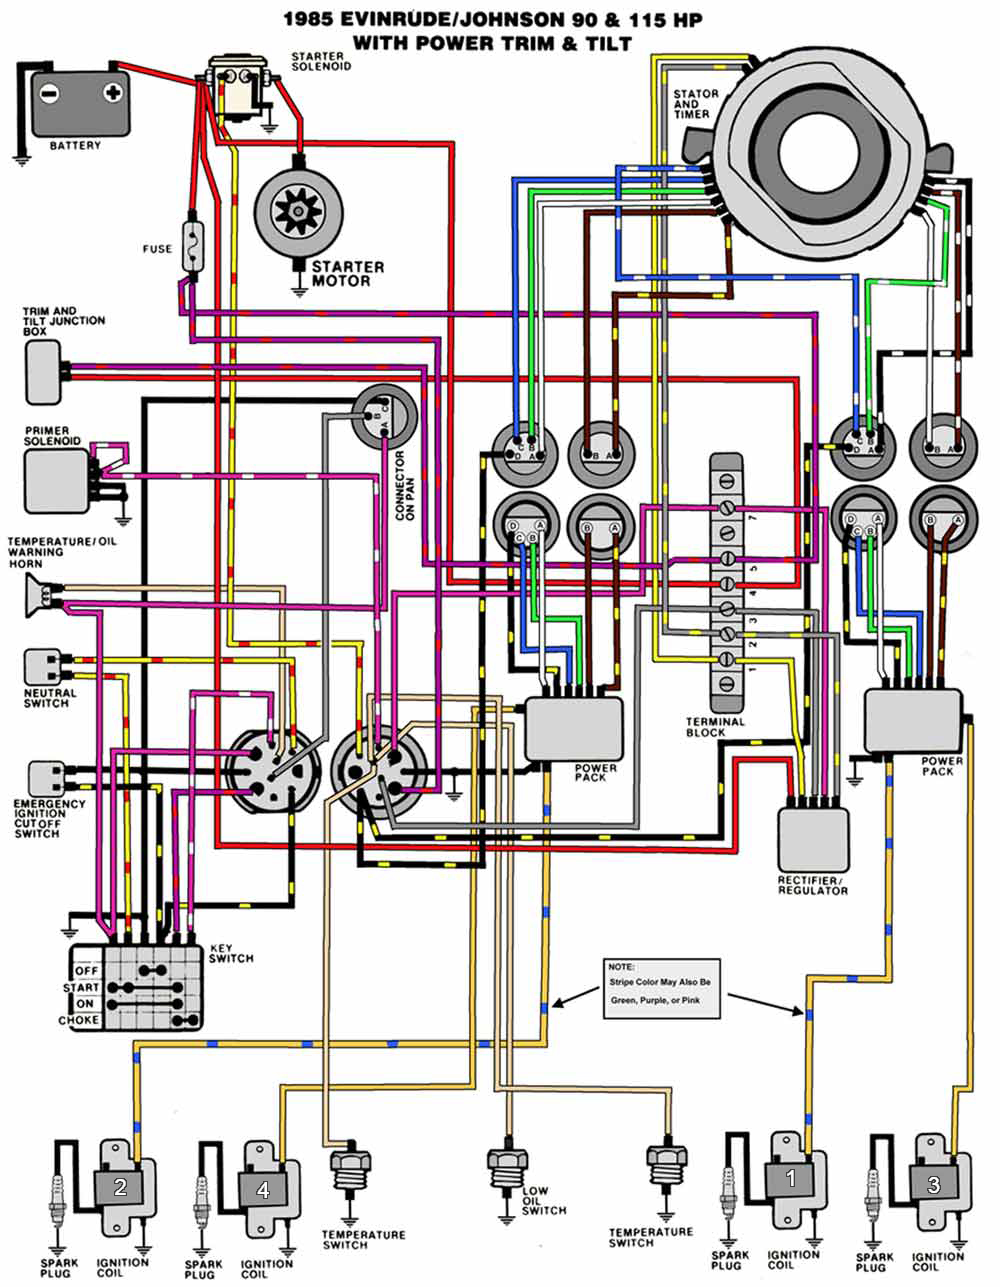 johnson outboard motor wiring diagram motorwallpapers org rh  motorwallpapers org 2011 Mercury 50 HP Wiring Diagram 50 Horsepower Mercury  Outboard Diagram